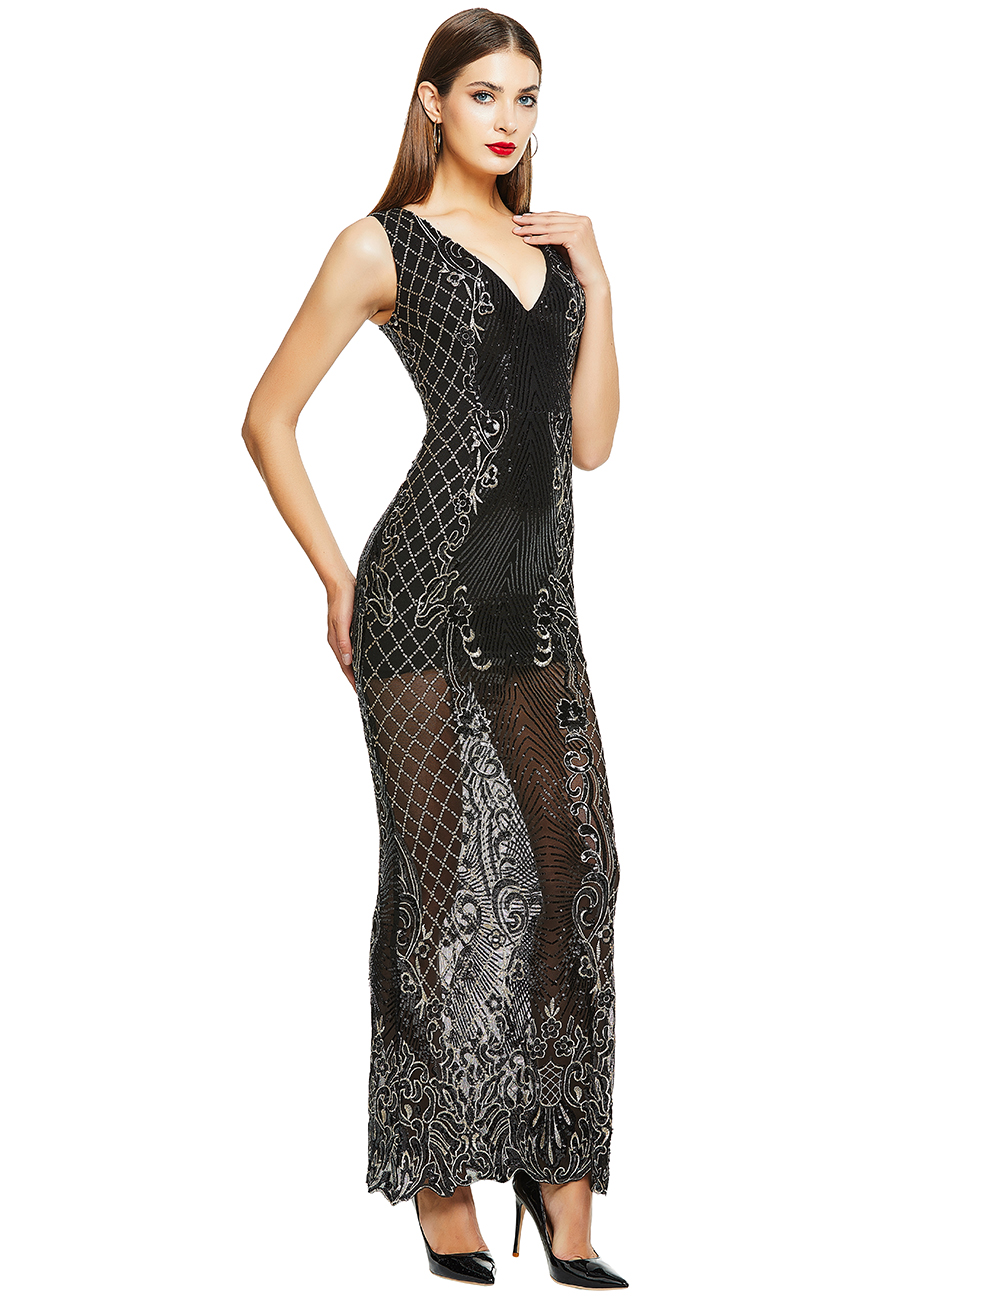 //cdn.affectcloud.com/hexinfashion/upload/imgs/Dress/Bandage_Dress/VZ191019-BK1/VZ191019-BK1-201911055dc0e0cb783c7.jpg